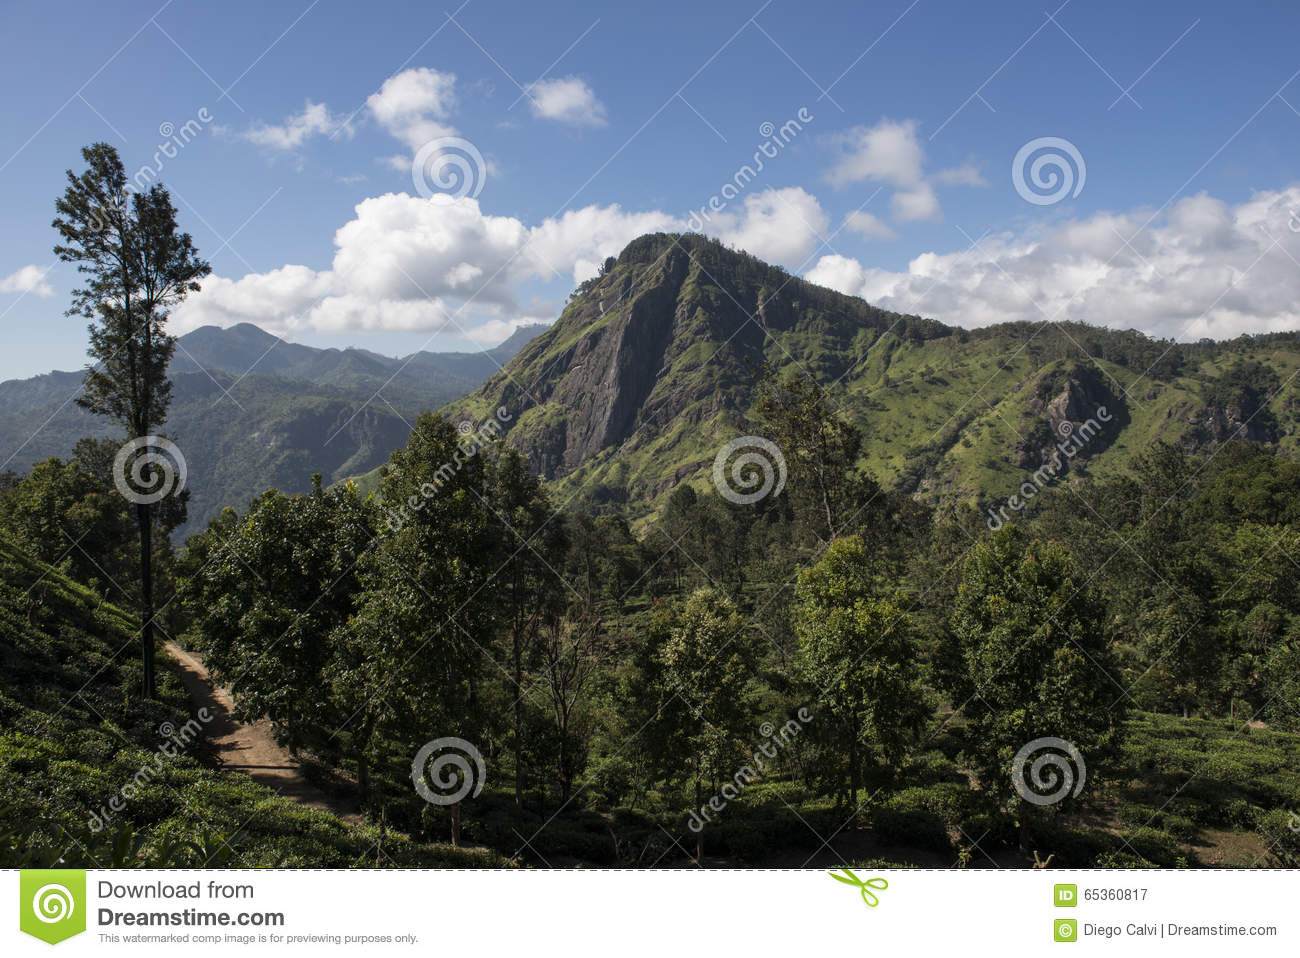 Download Green Montains With Tea Plantations Ella, Sri Lanka. Stock Image - Image of asia, landscape: 65360817